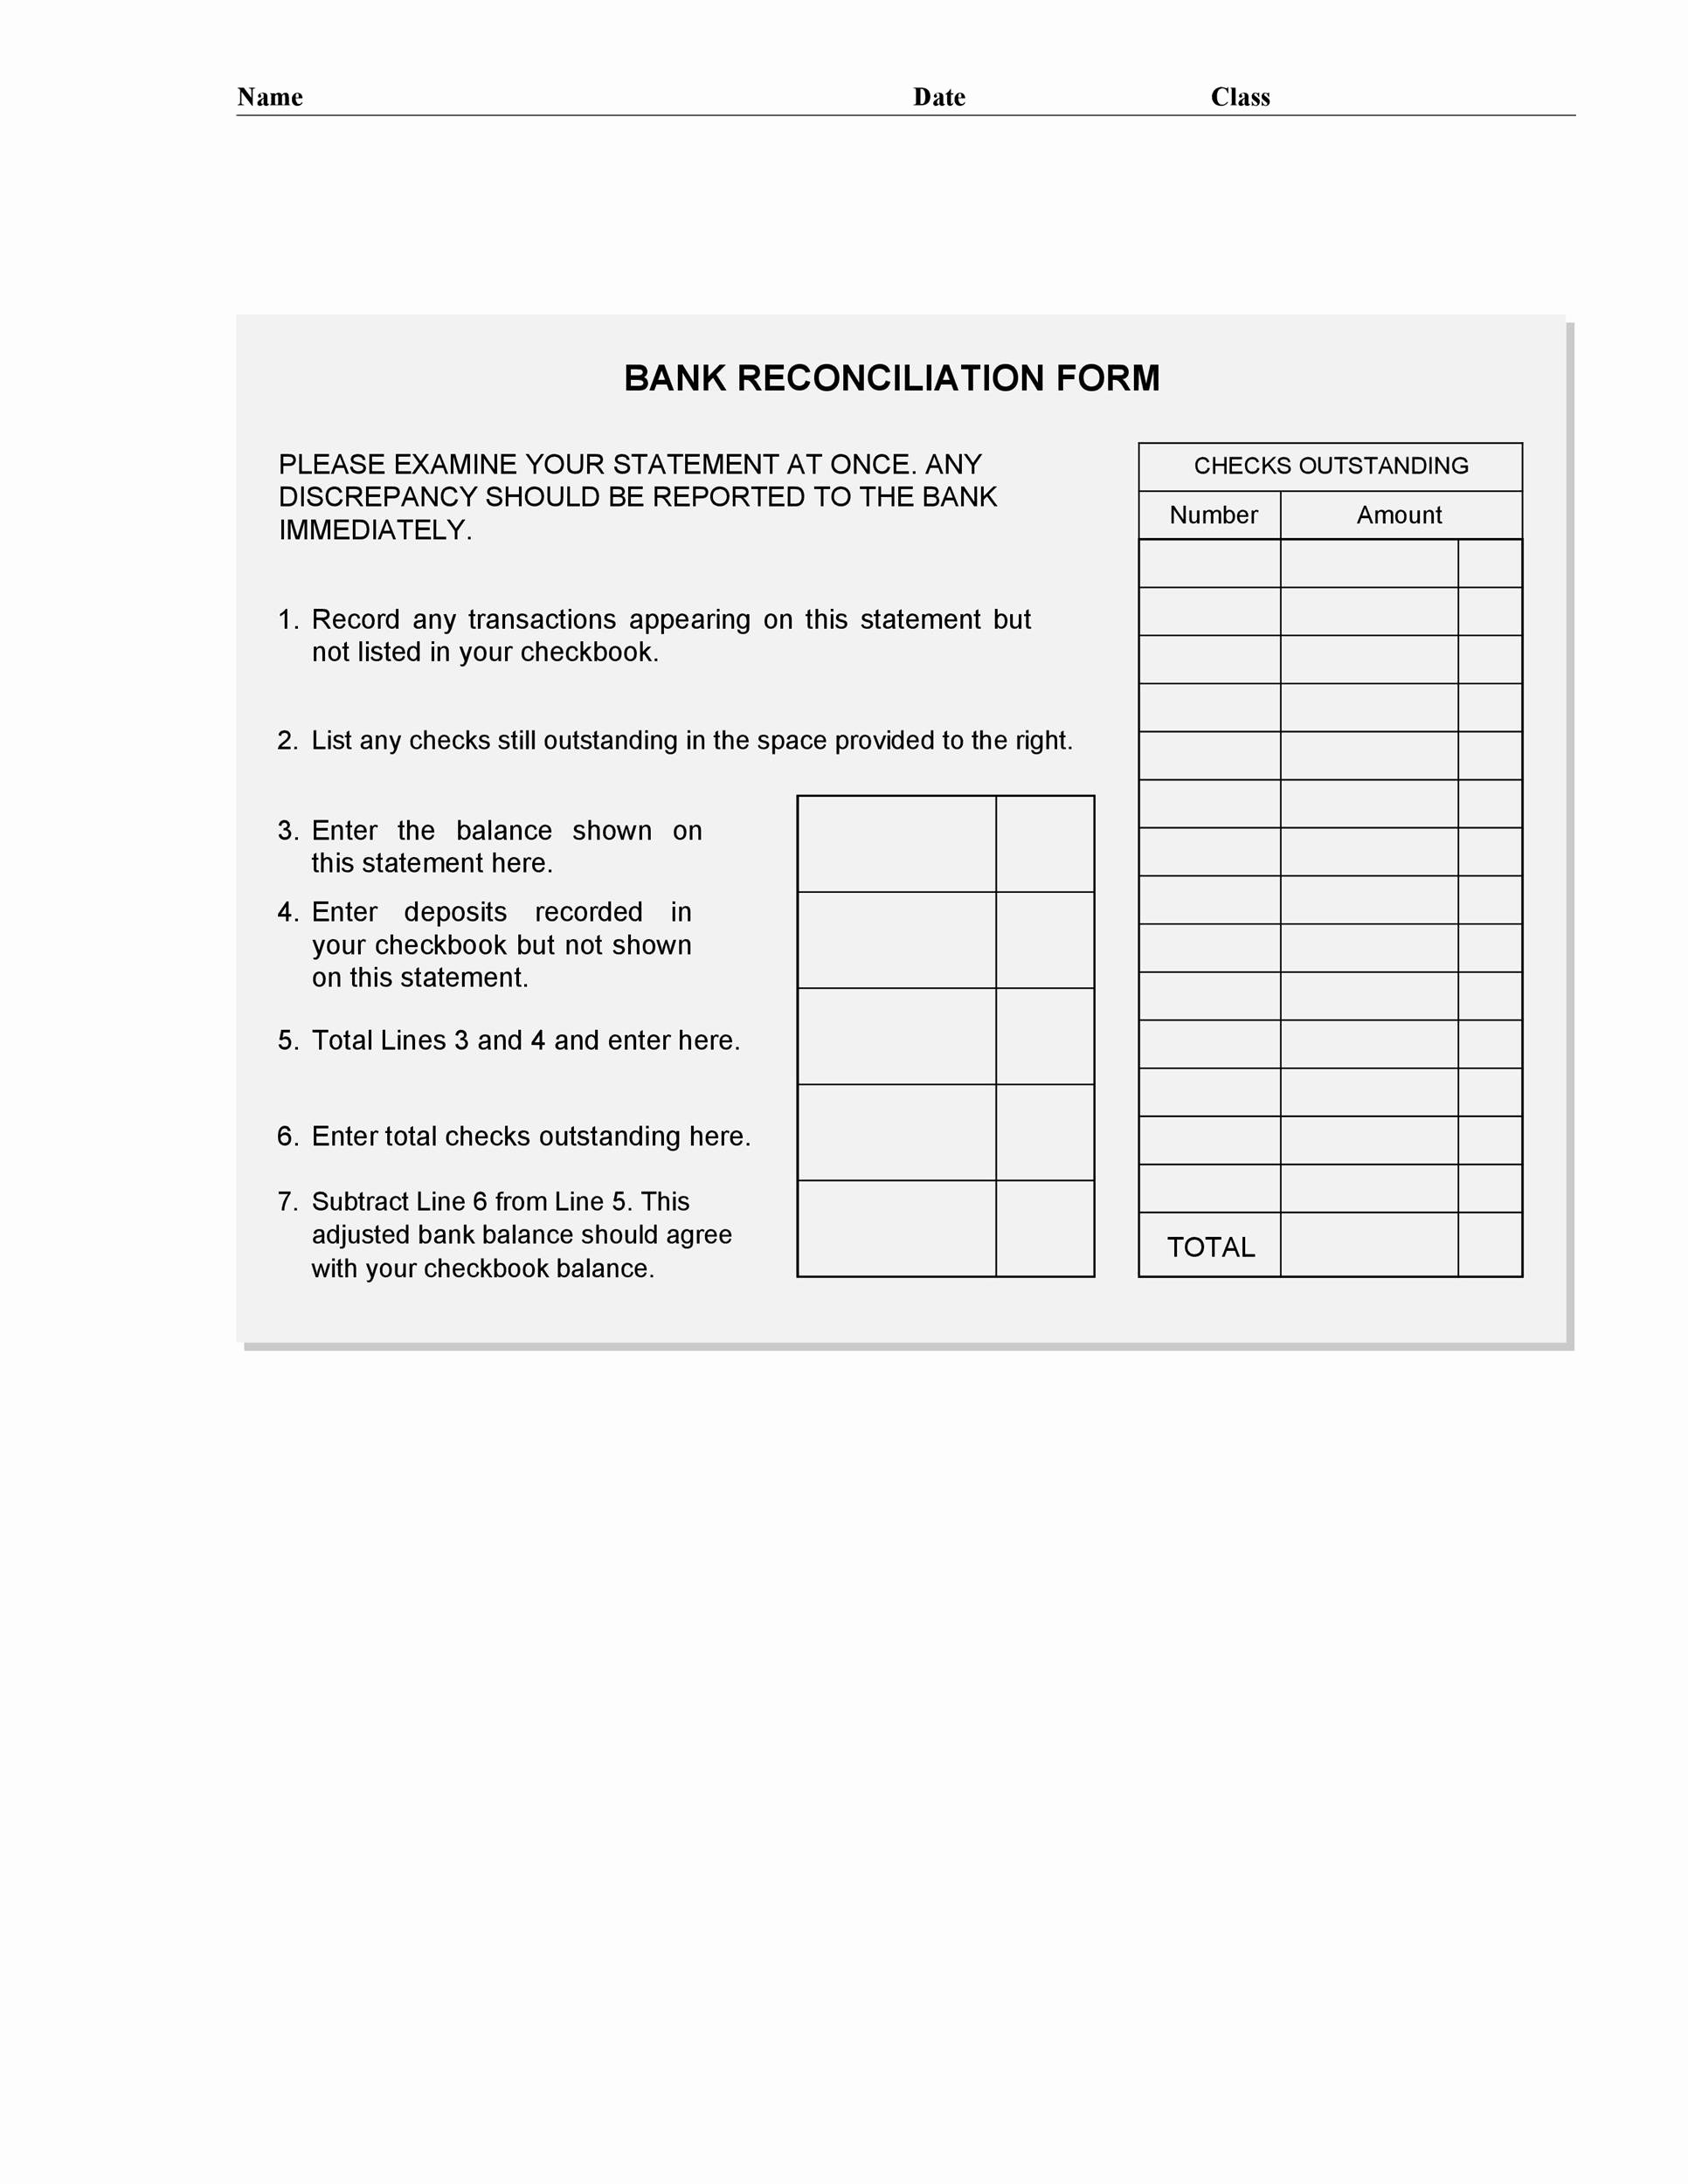 Reconciling A Bank Statement Worksheet Inspirational 50 Bank Reconciliation Examples & Templates [ Free]